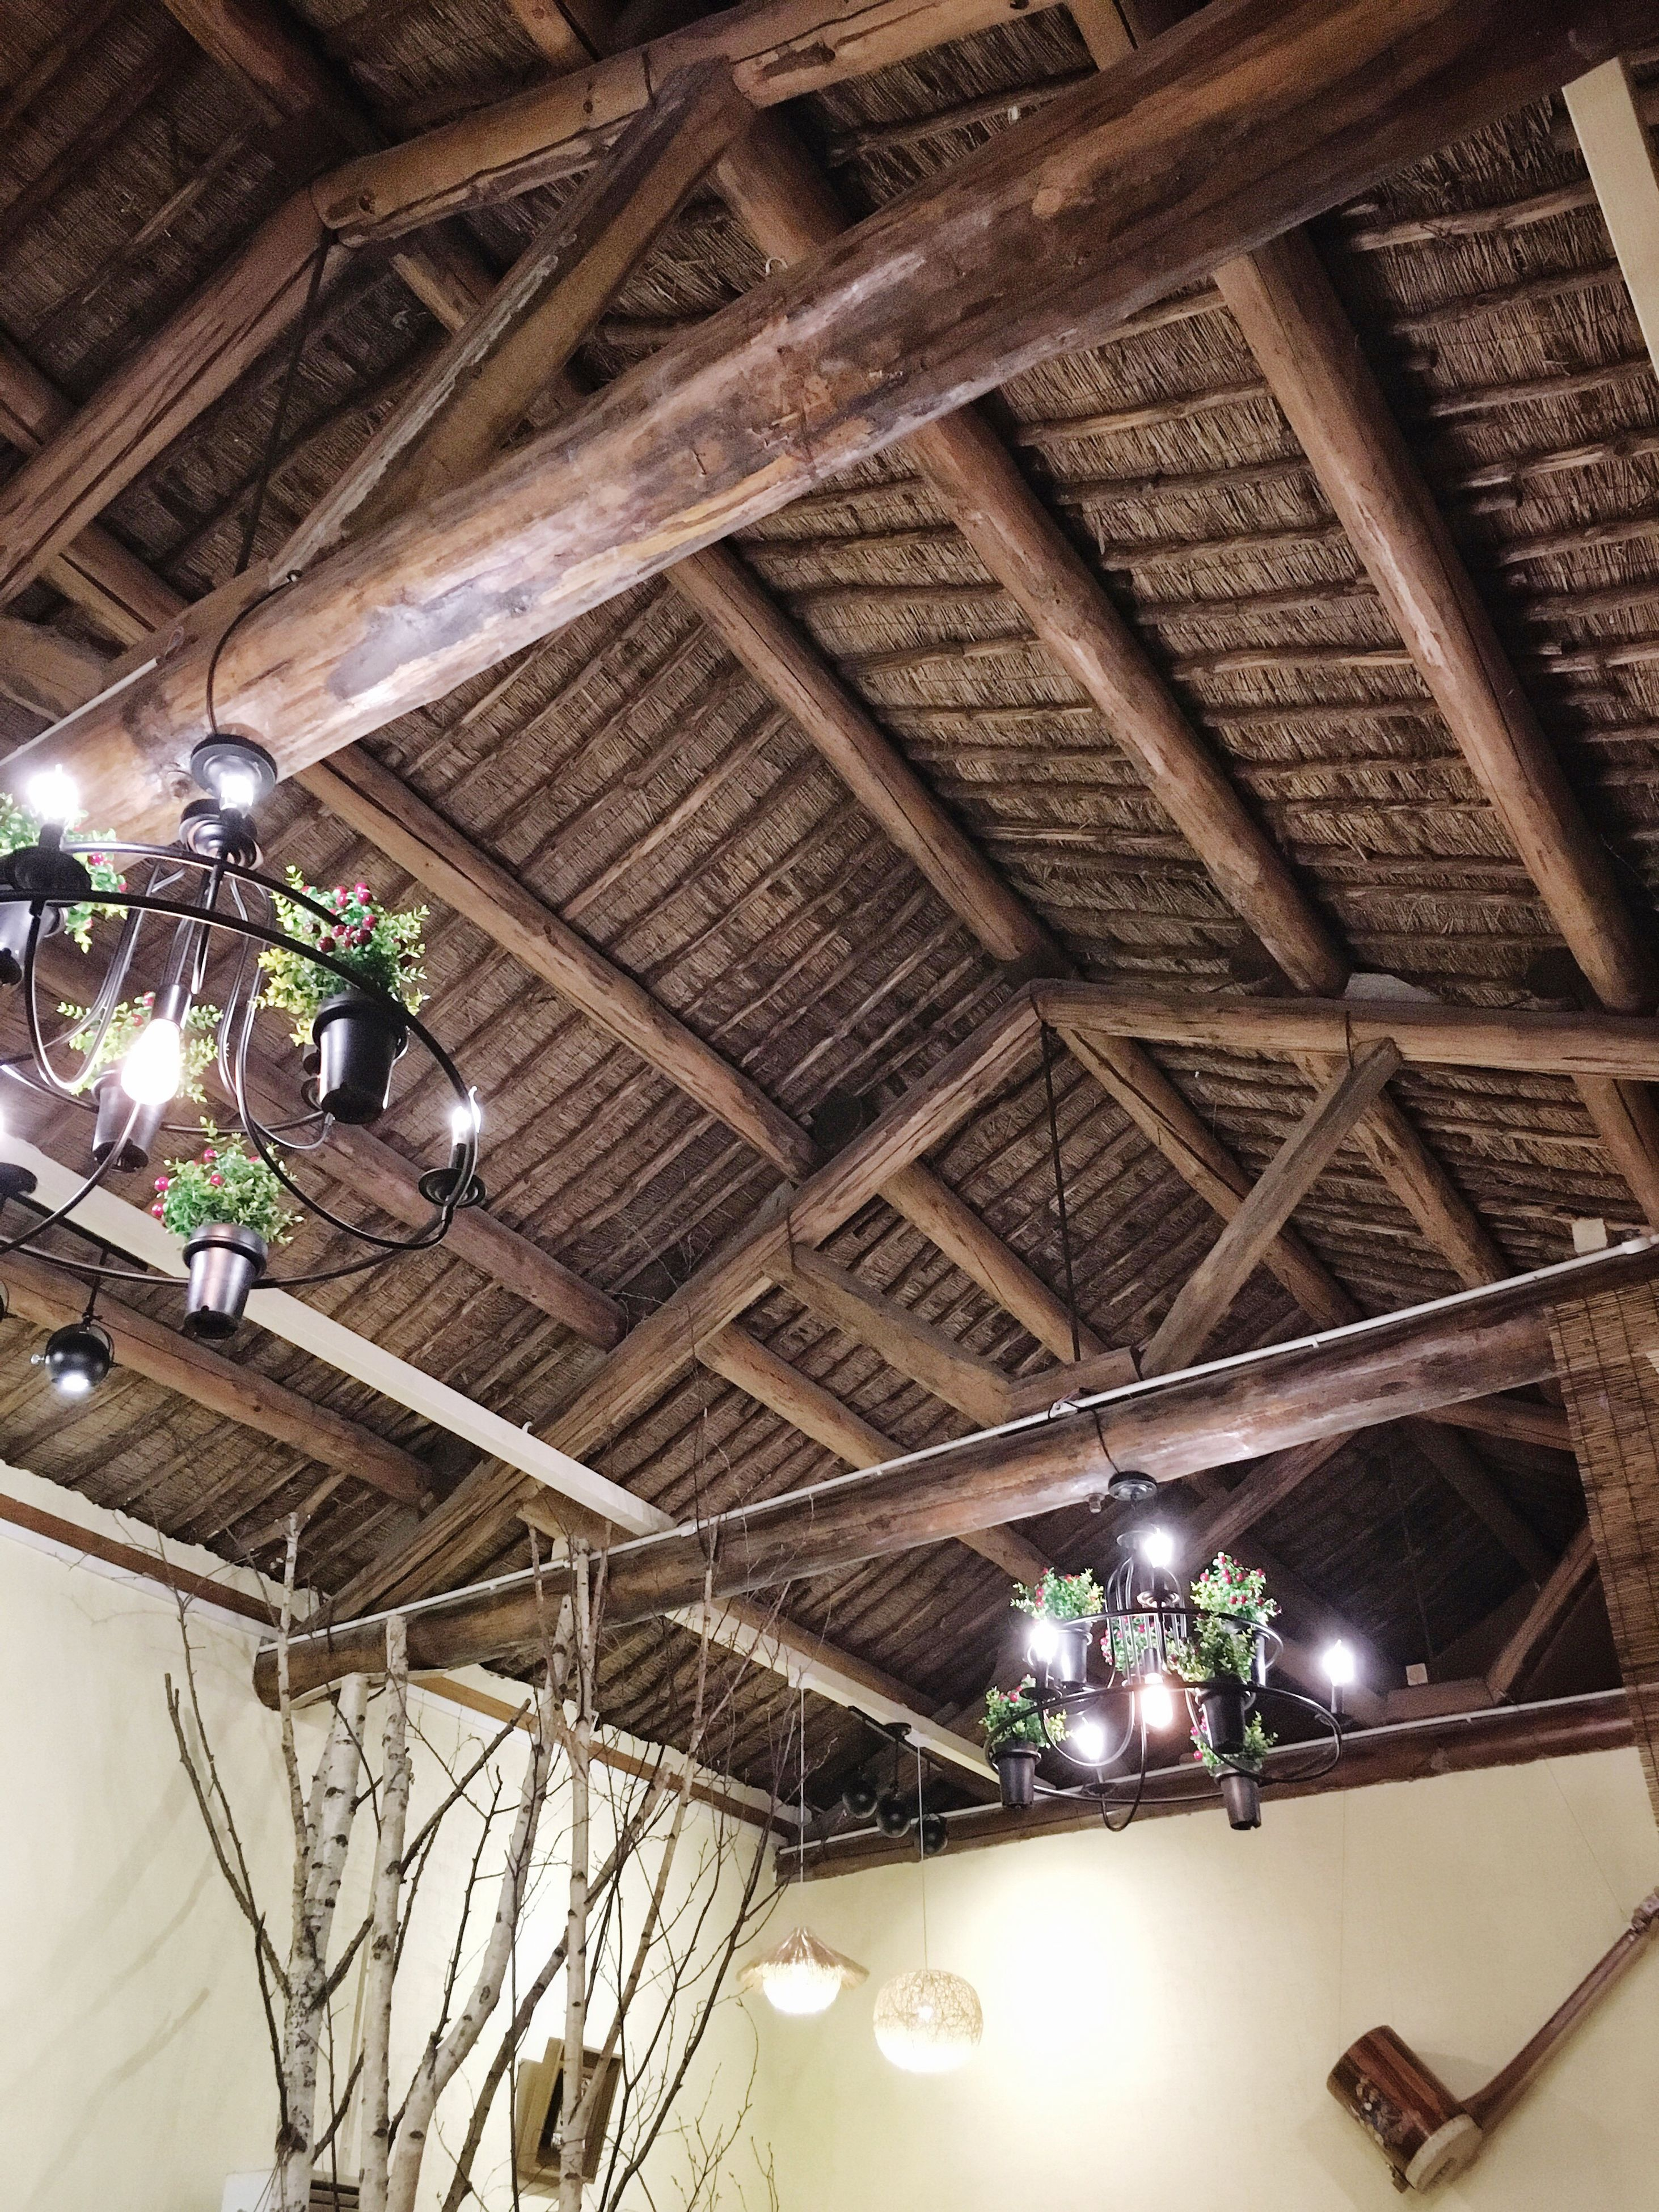 ceiling, indoors, low angle view, roof beam, architecture, illuminated, lighting equipment, built structure, ceiling fan, roof, modern, real people, day